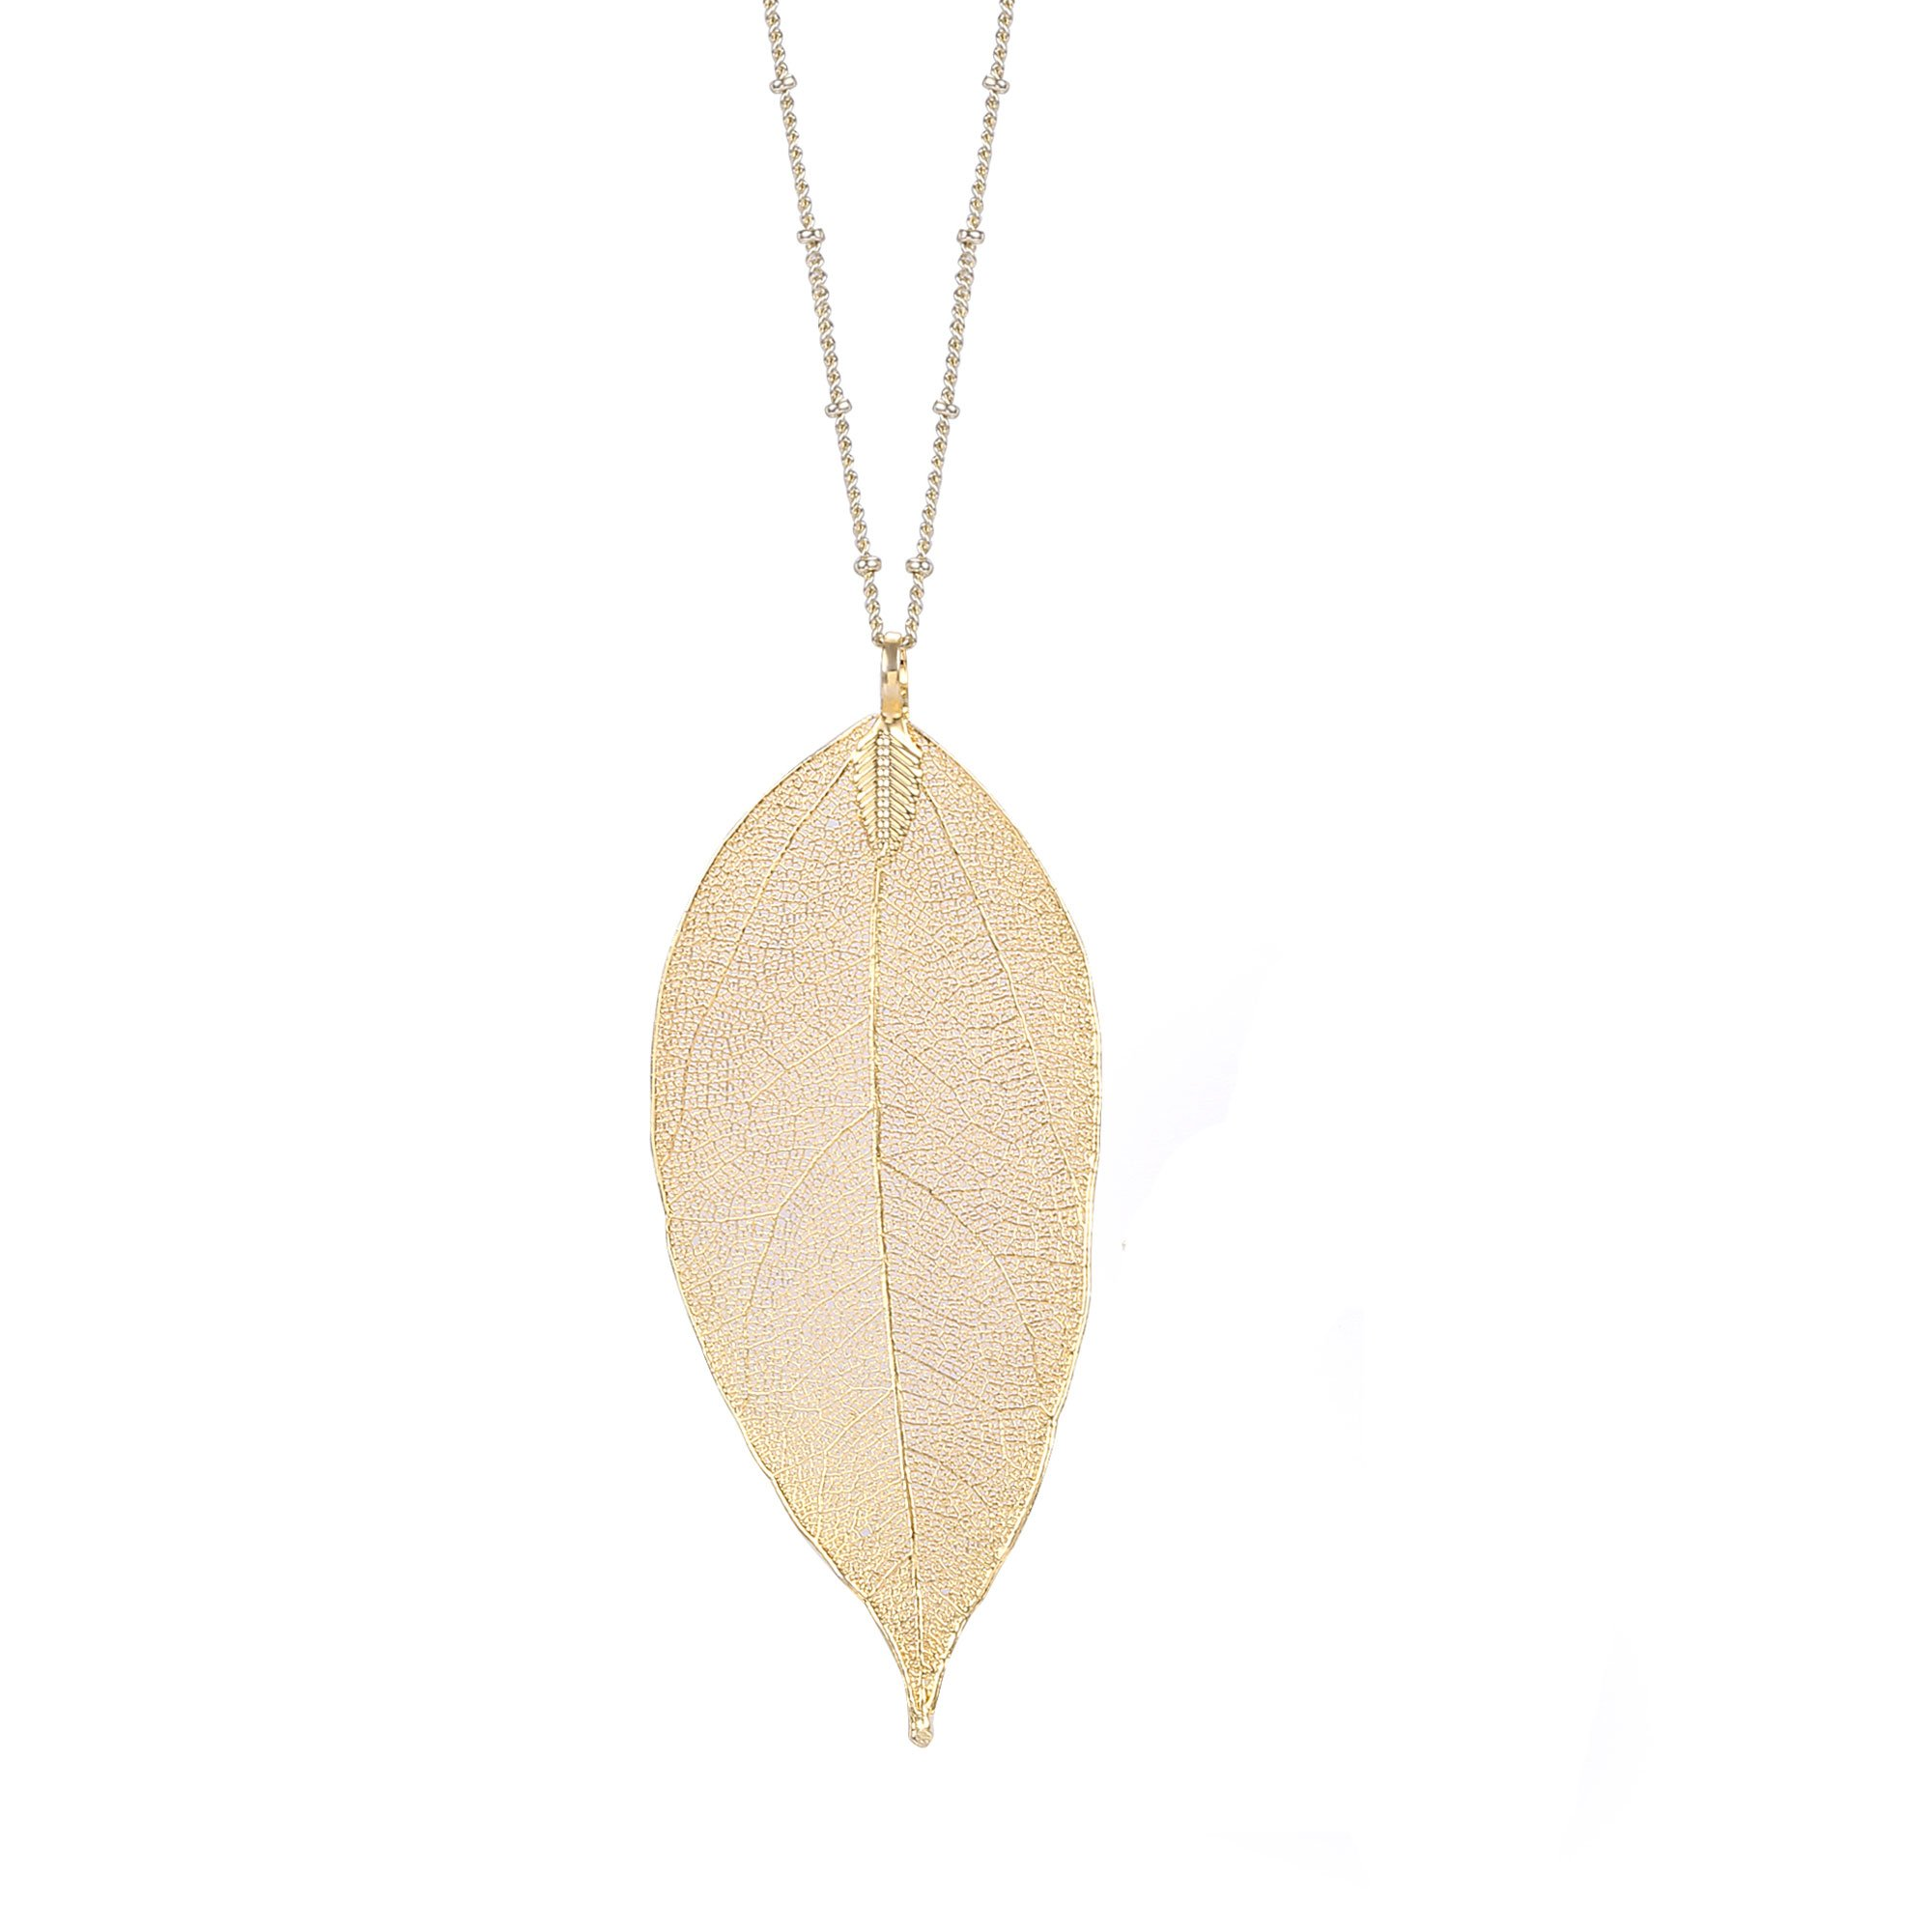 BOUTIQUELOVIN Women's Long Leaf Pendant Necklaces Real Filigree Autumn Leaf Fashion Jewelry Gifts (14k Gold)